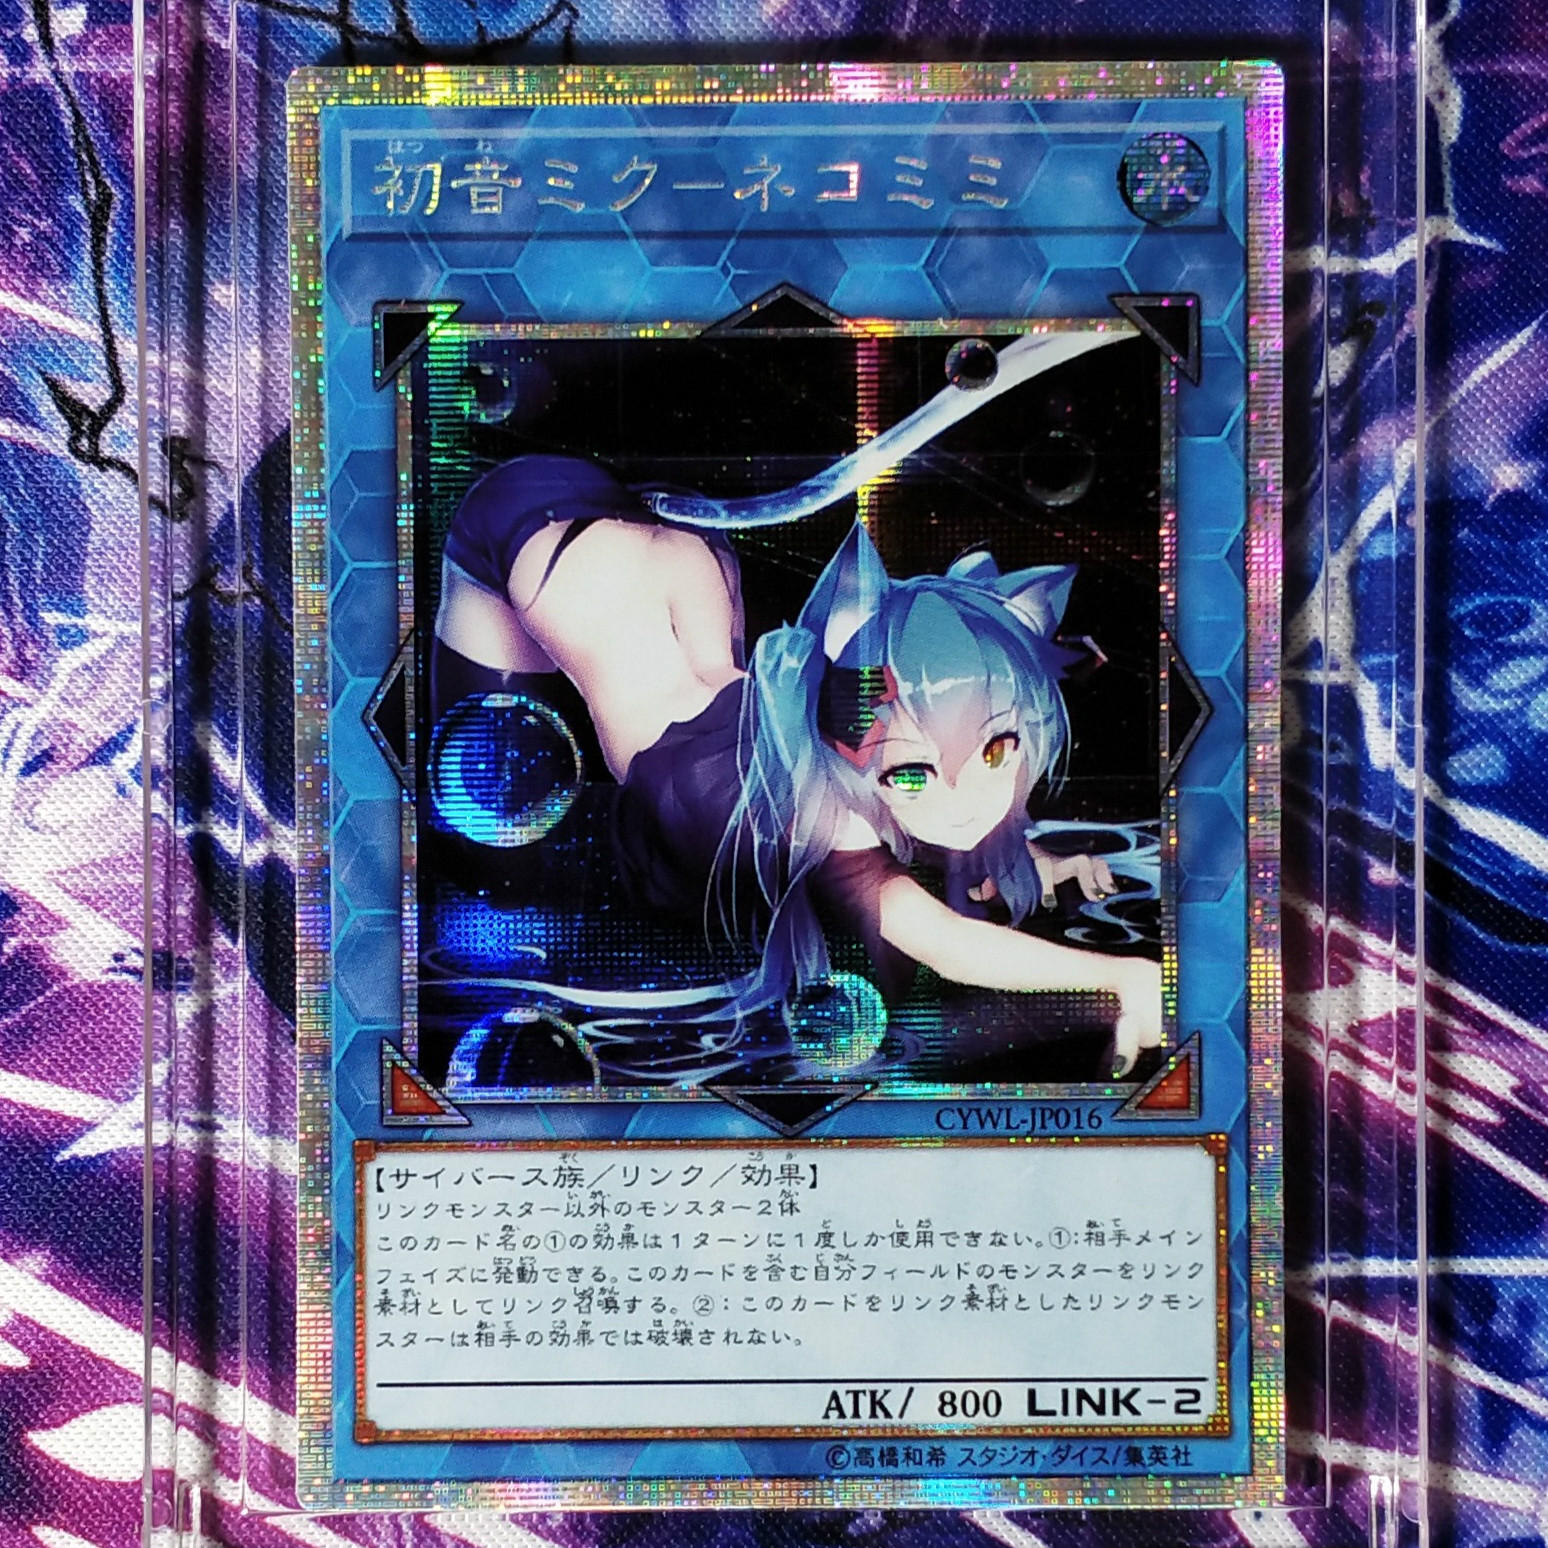 Hatsune Miku DIY Colorful Toys Hobbies Hobby Collectibles Game Collection Anime Cards